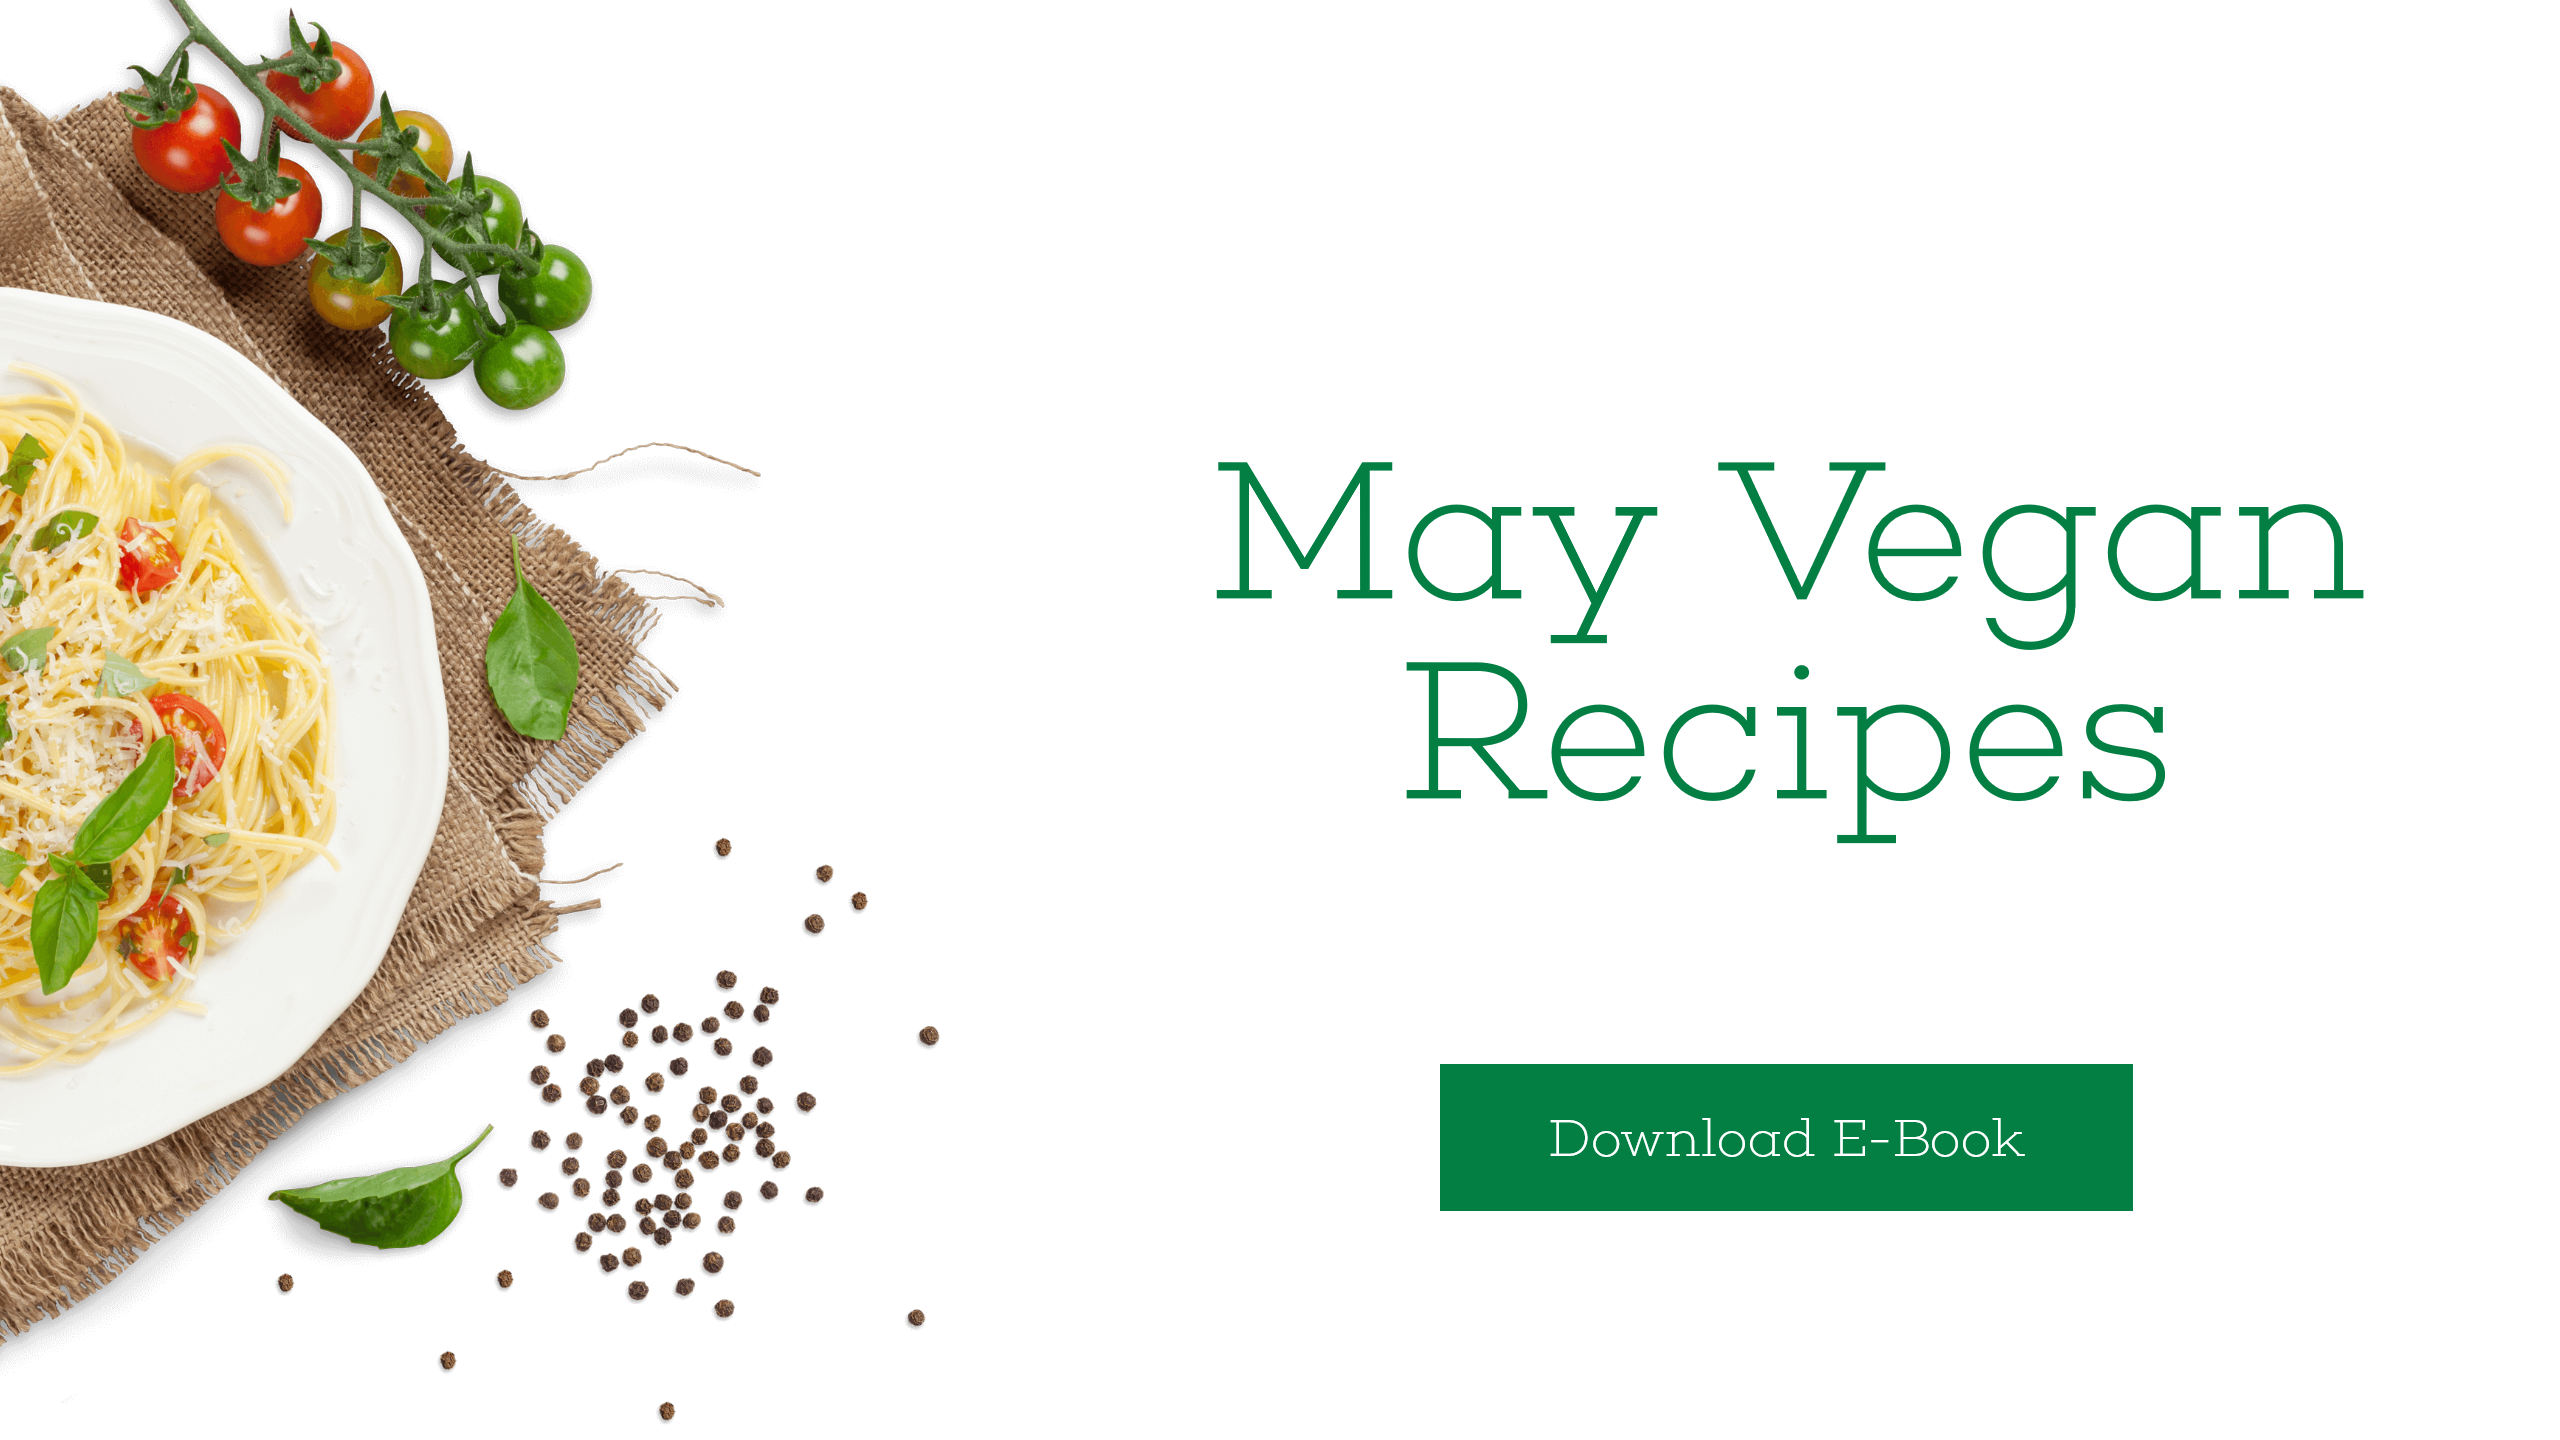 Vegan Recipes - Download E-Book Design  Template